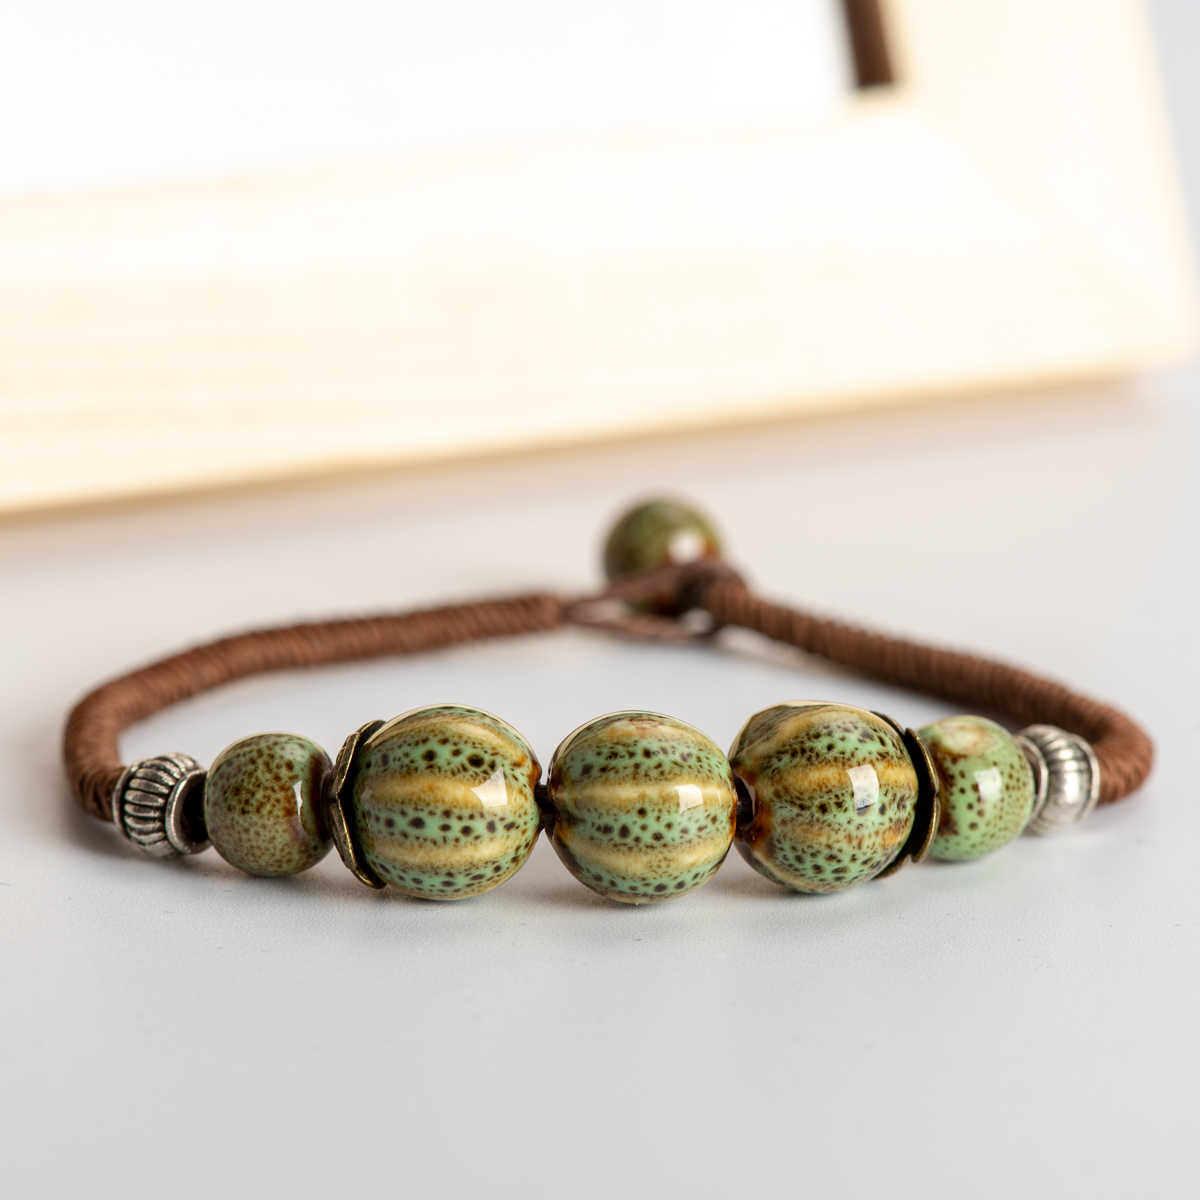 DIY Boho Ceramic Bracelets Handmade Bangle Boho Ceramic jewelry for women drop shipping #HY268